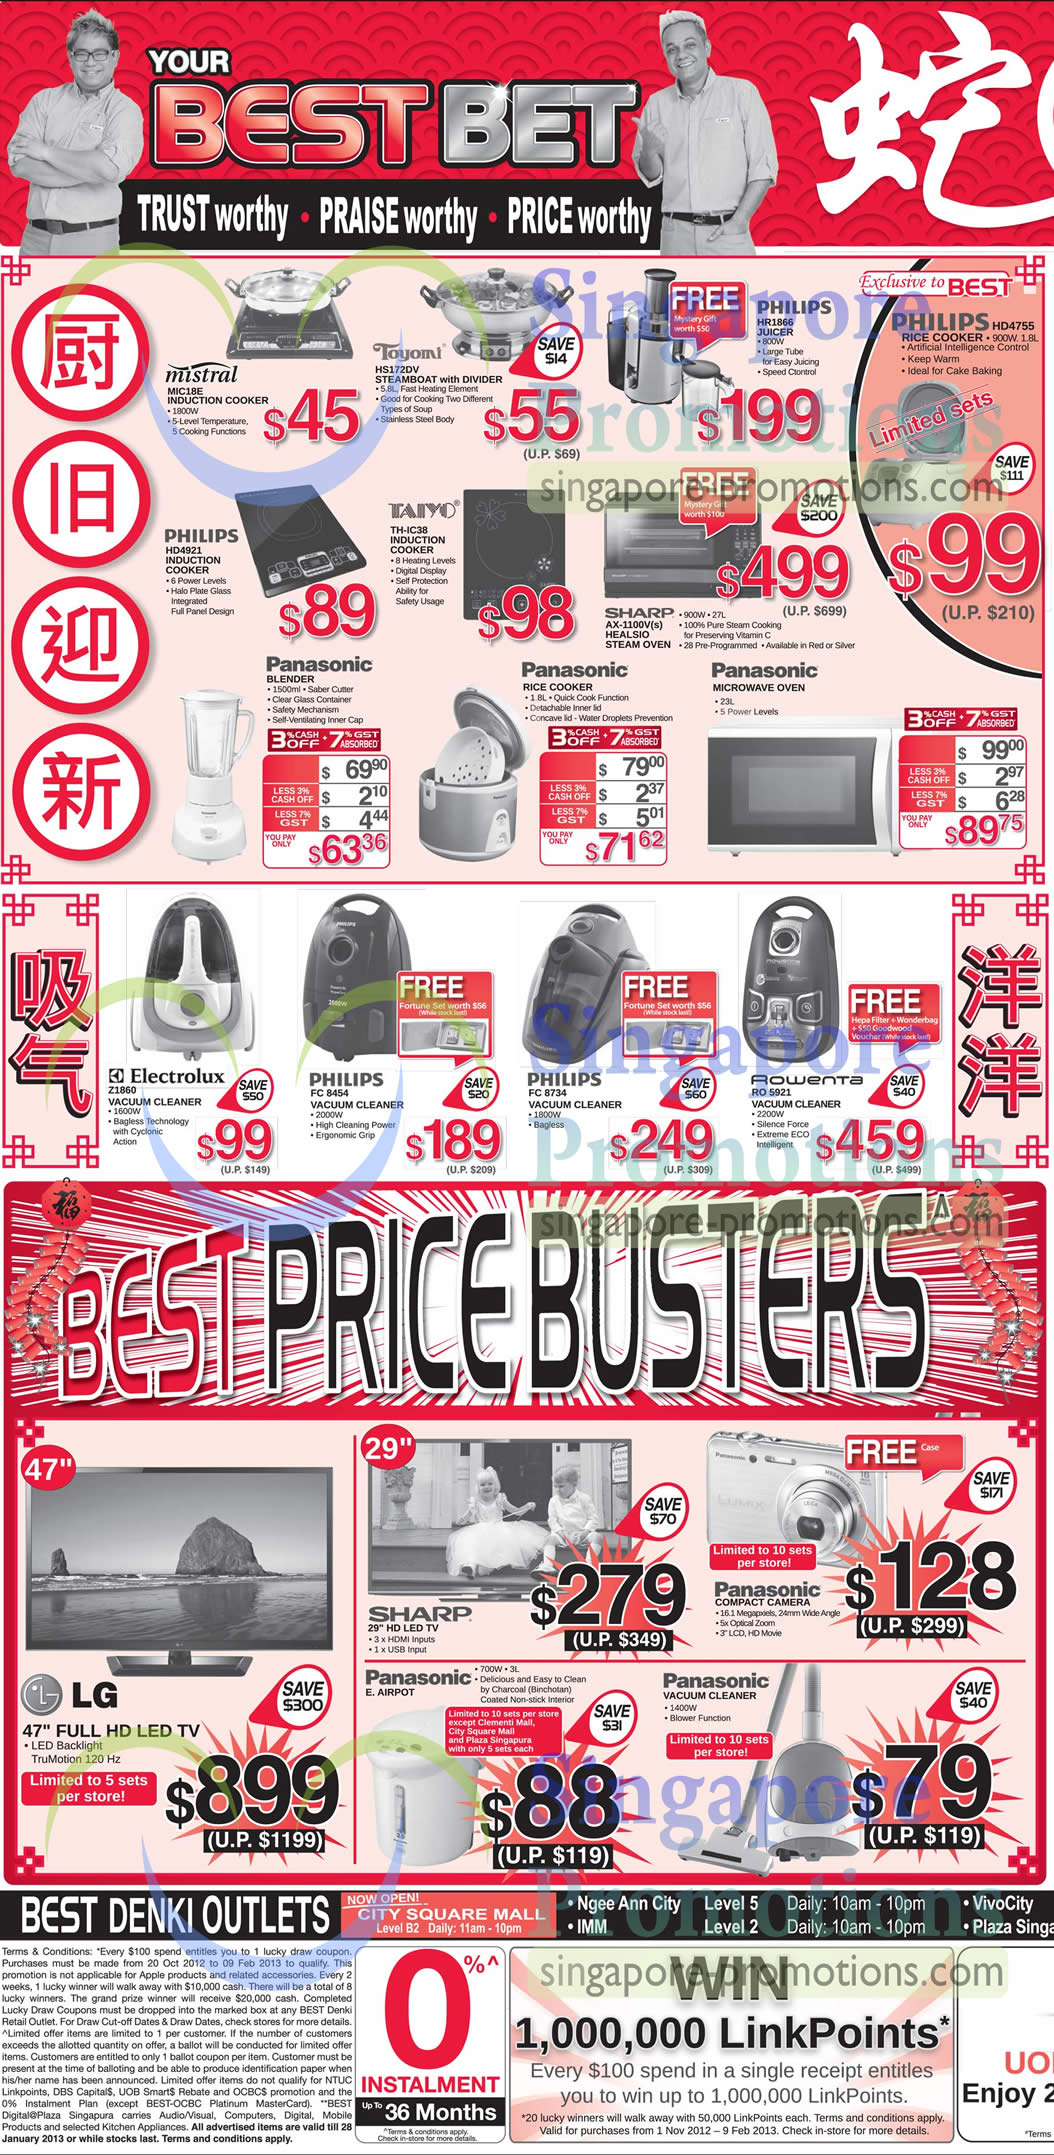 Mistral MIC18E Induction Cooker, Toyomi HS172DV Steamboat, Philips HR1866 Juicer, Philips HD4755 Rice Cooker, Philips HD4921 Induction Cooker, Taiyo TH-IC38 Induction Cooker, Sharp AX-1100V(s) Healsio Steam Oven, Electrolux Z1860 Vacuum Cleaner, Philips FC8454 Vacuum Cleaner, Philips FC8734 Vacuum Cleaner, Rowenta RO 5921 Vacuum Cleaner